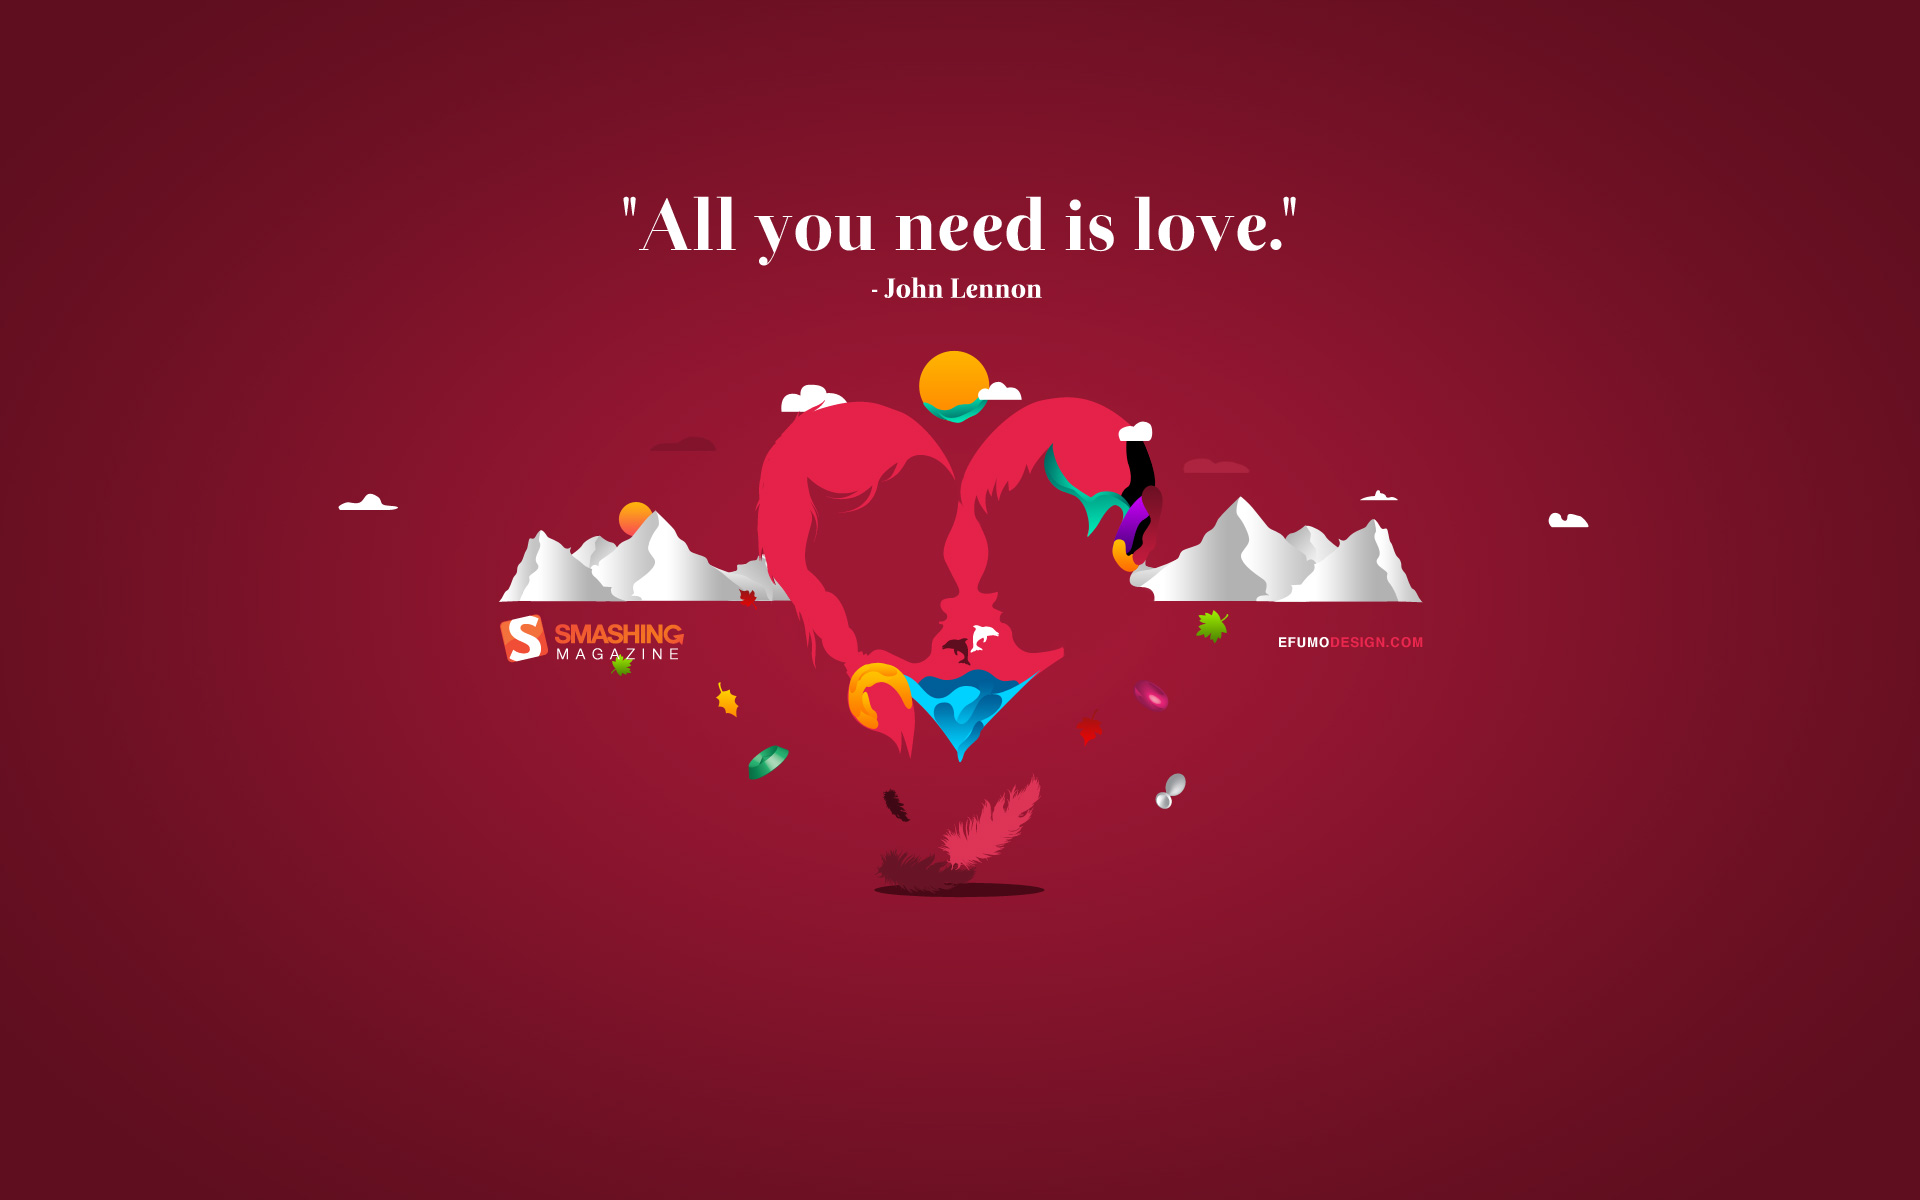 All You Need is Love Wallpapers HD Wallpapers 1920x1200